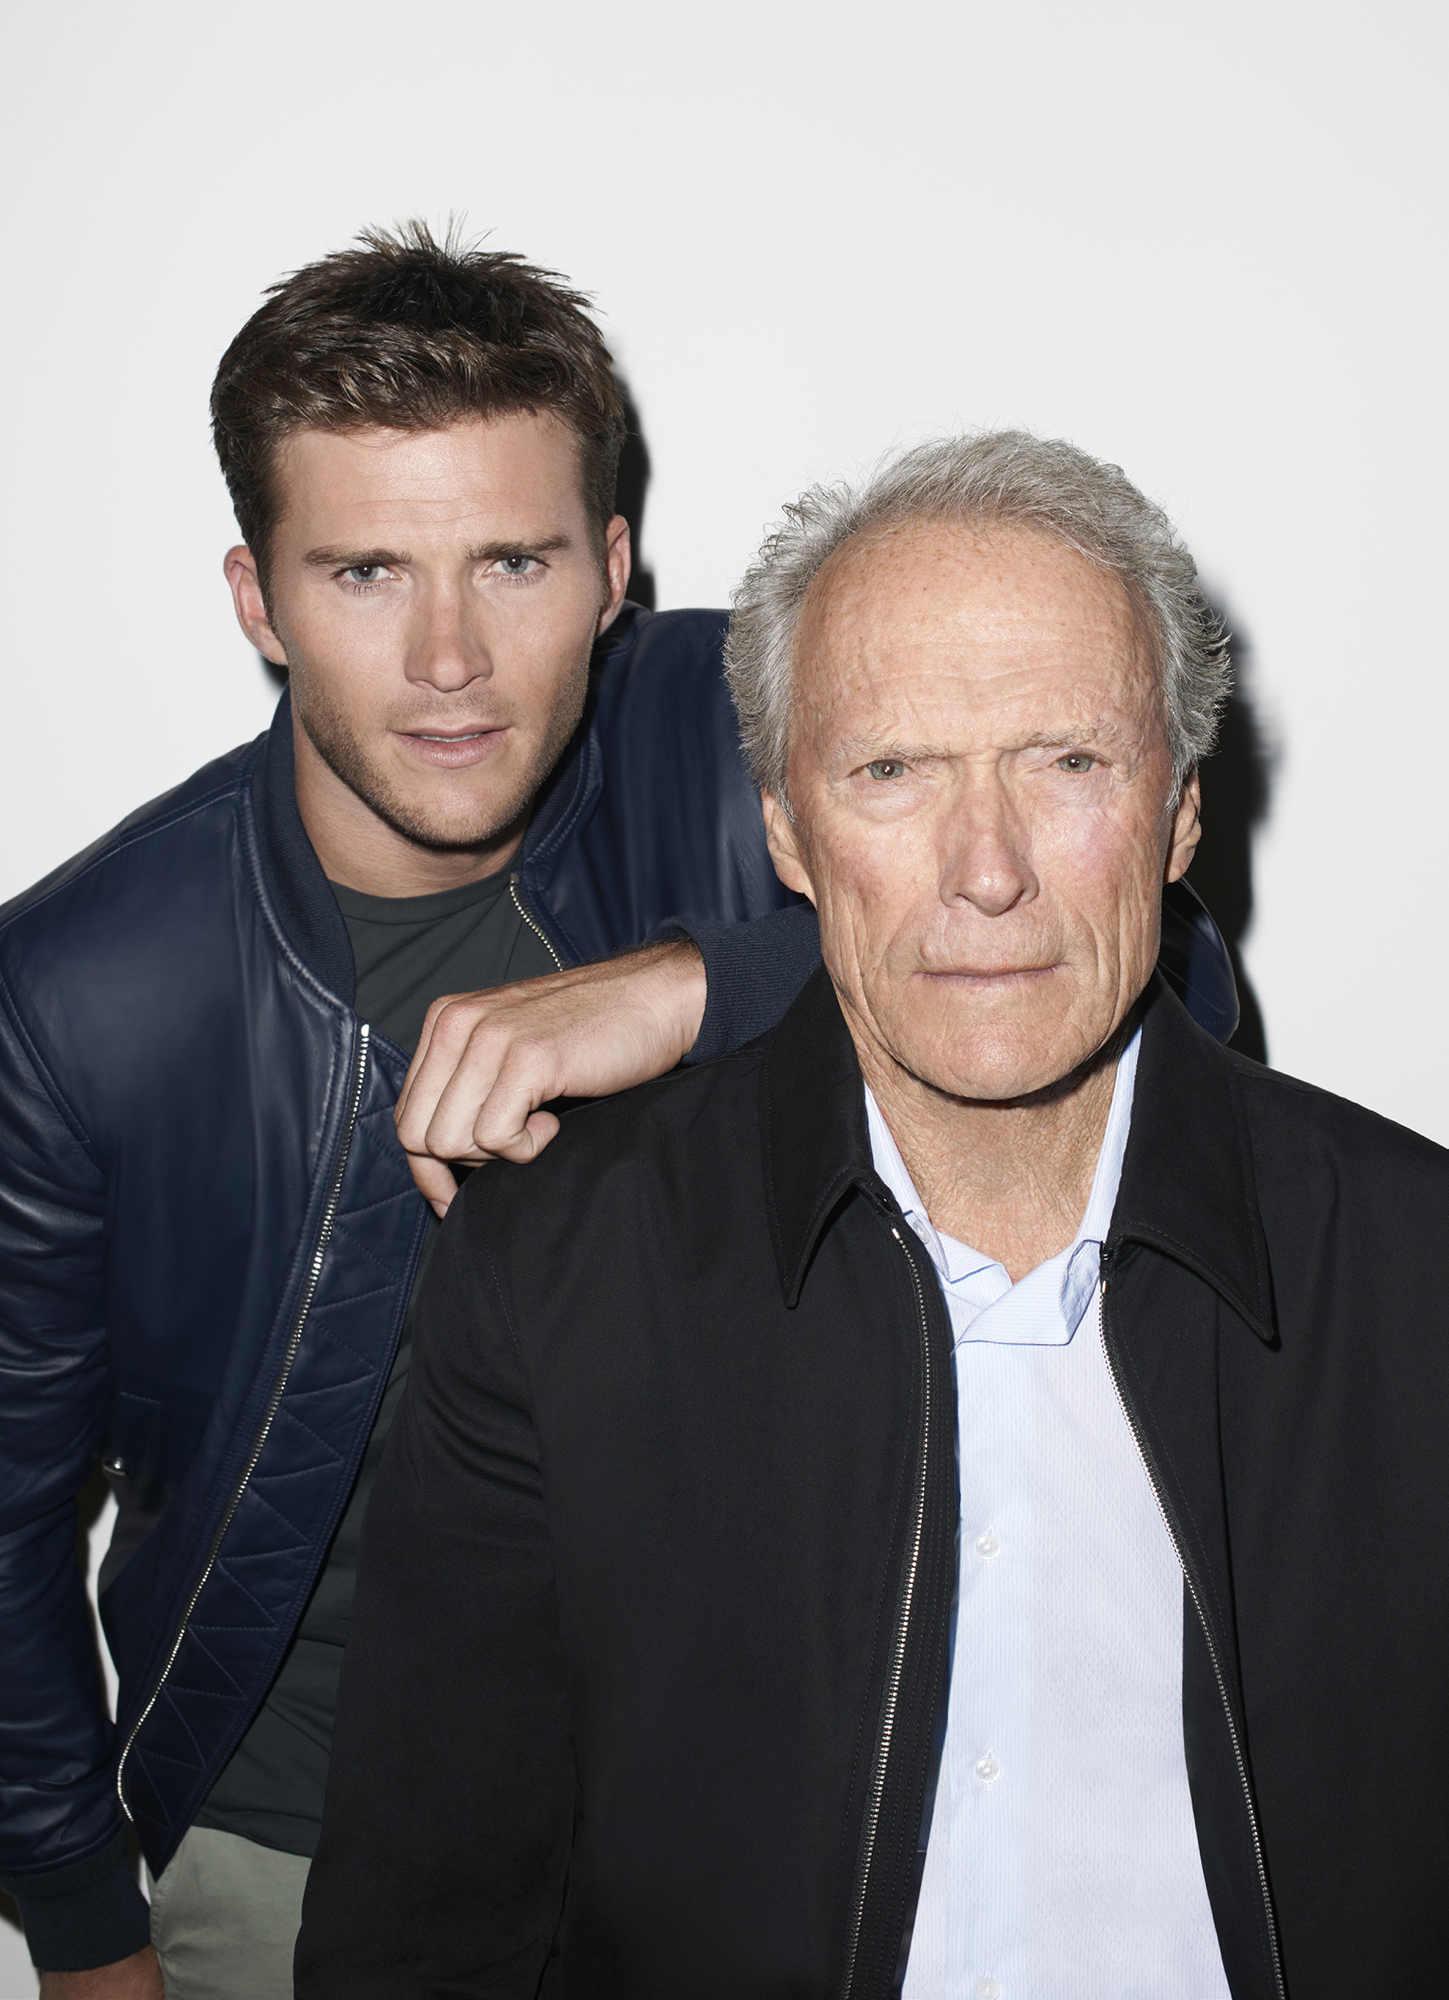 resized_Clint and Scott Eastwood ESQUIRE Sept2016 - Fabiola5.jpg